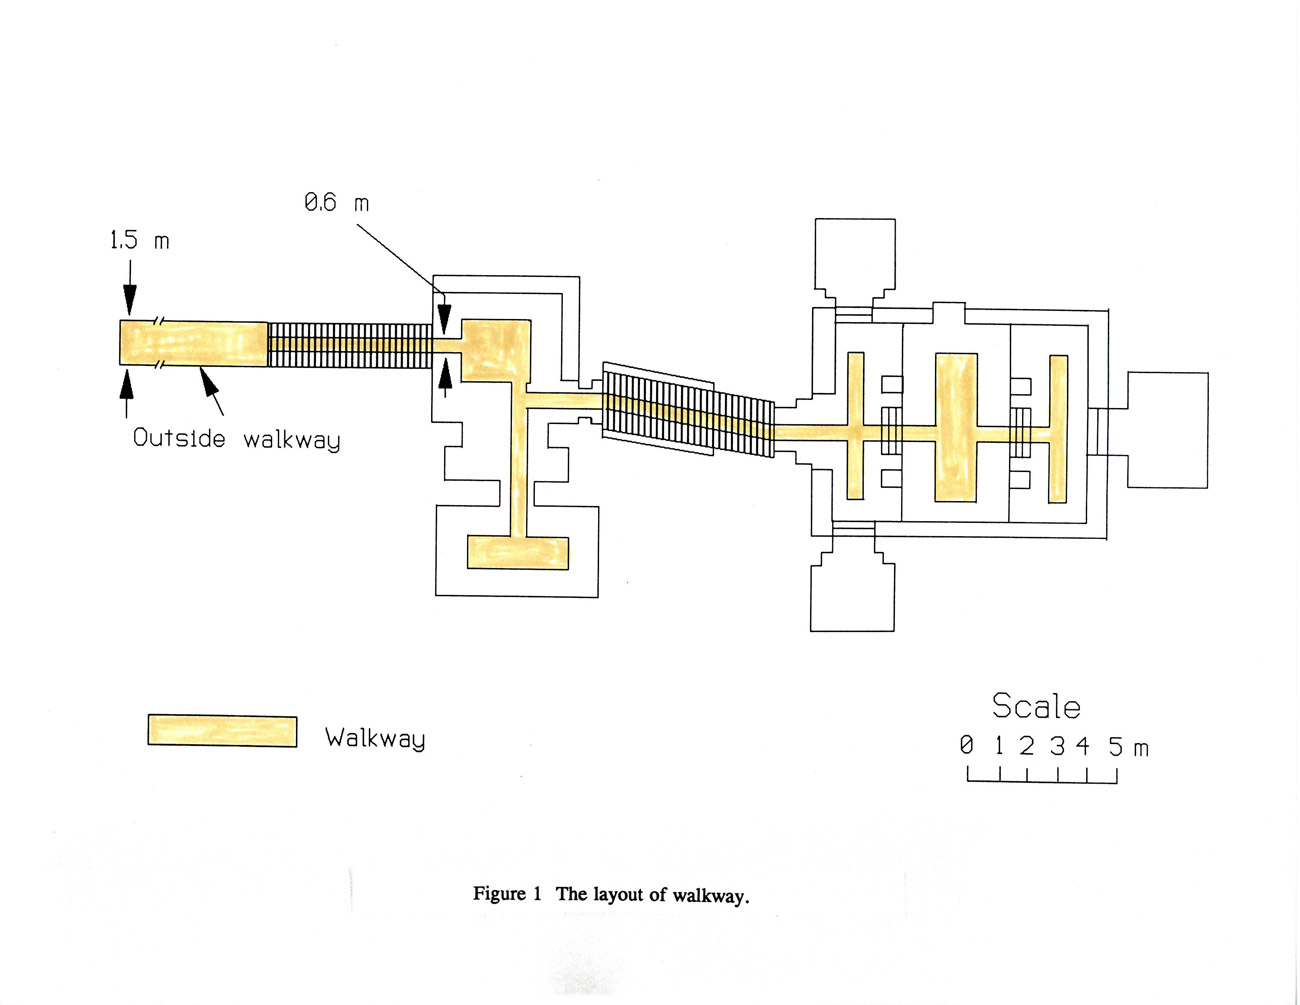 A diagram showing a path across several rooms, labeled Figure 1: The layout of walkway